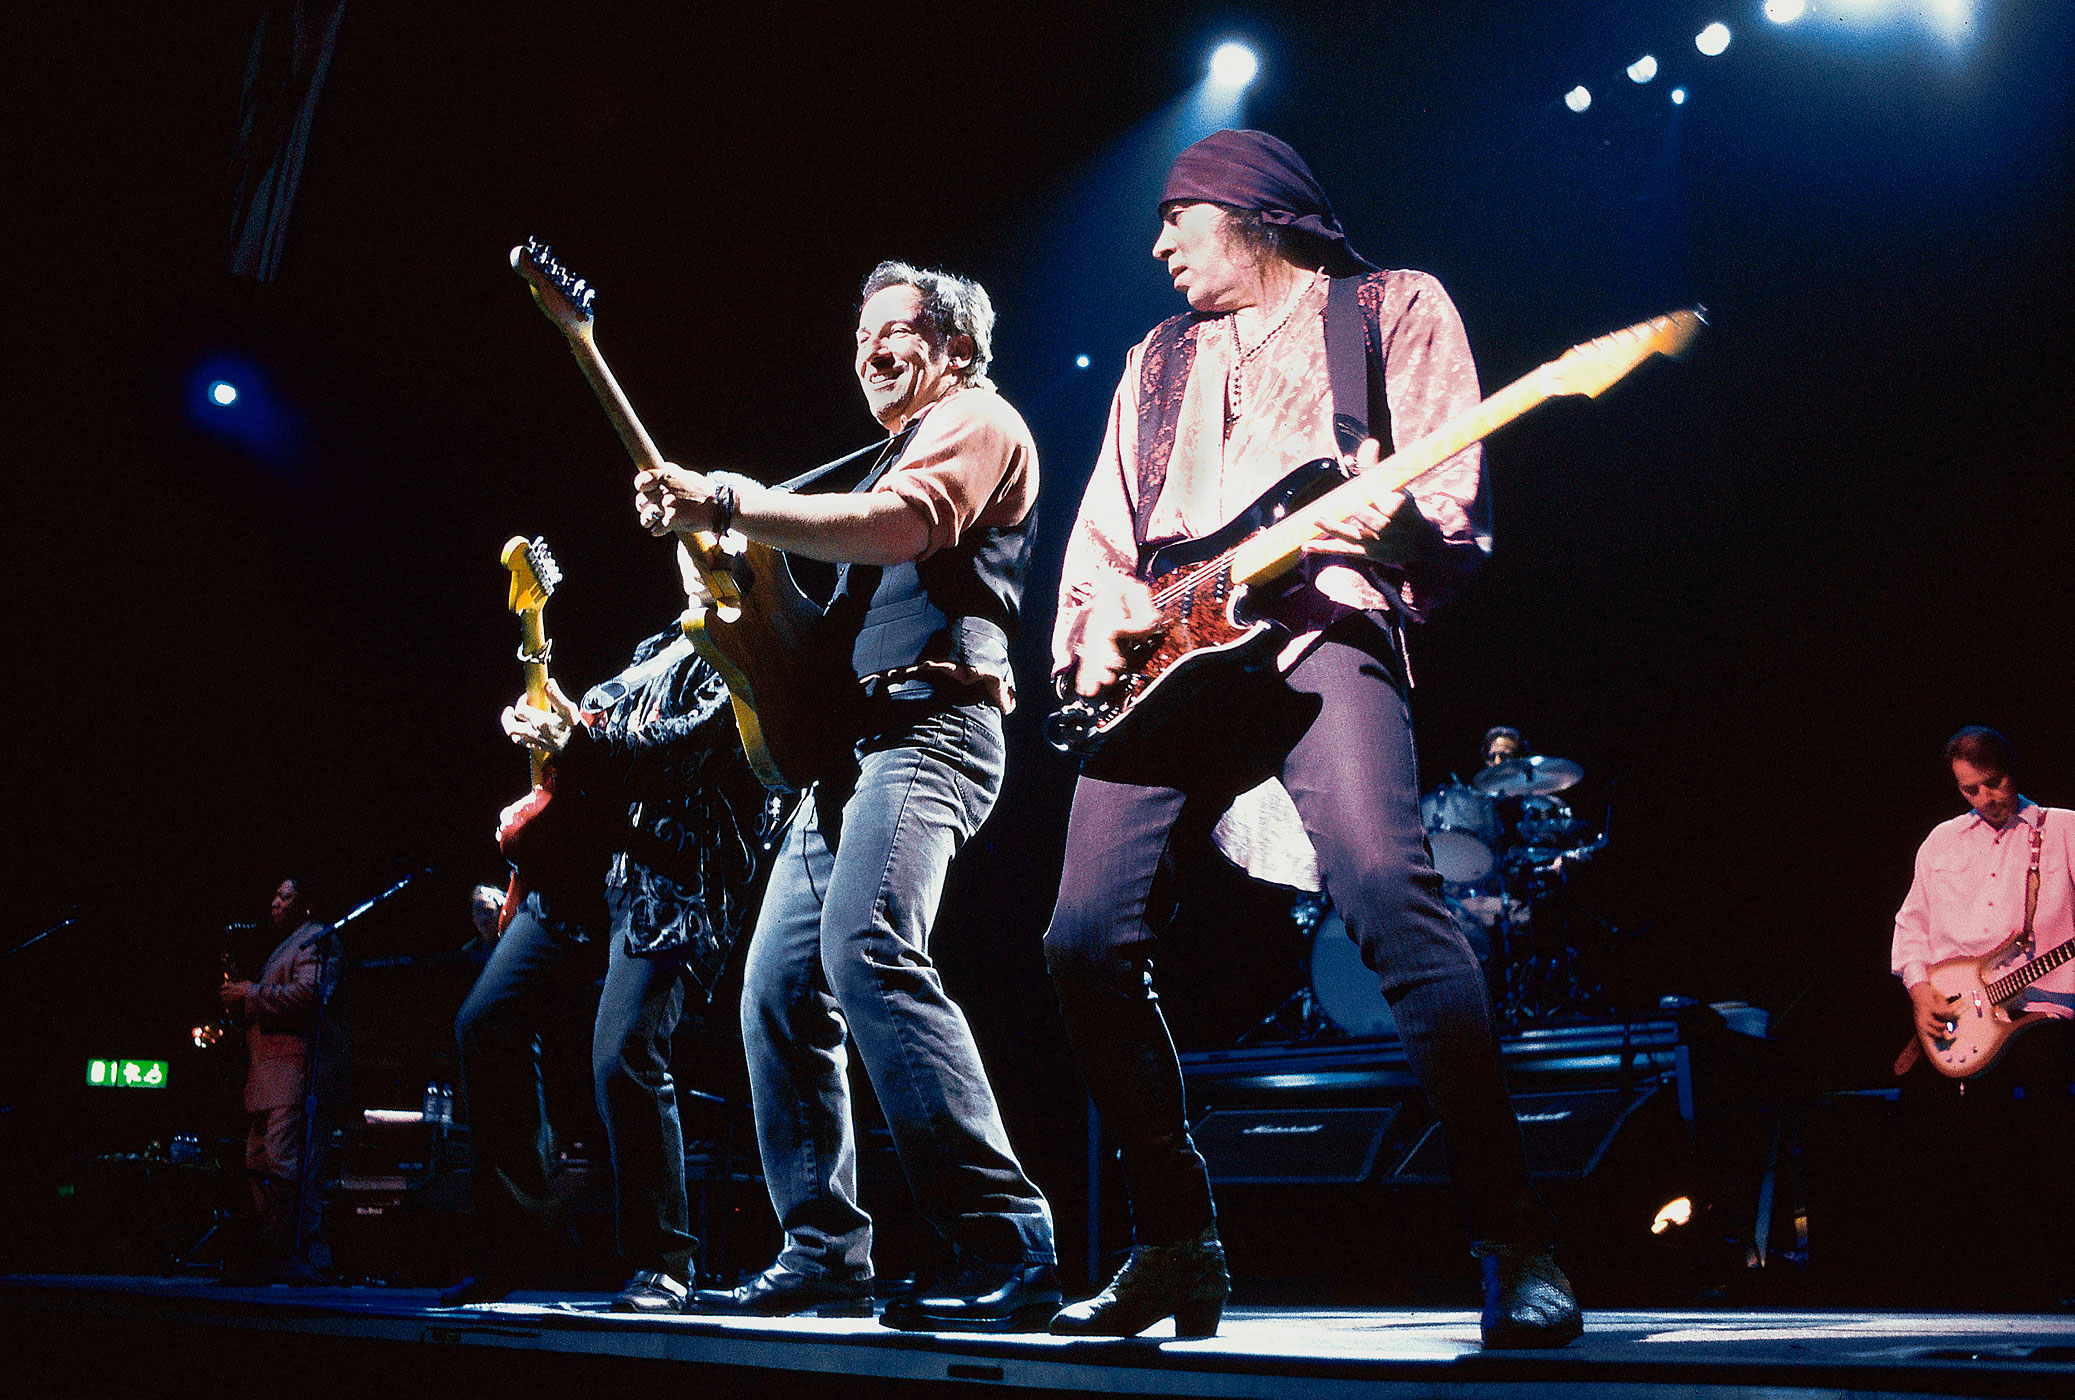 1999:                                Springsteen reunited with the E Street Band to relive their glory days. Guitarists Steve Van Zandt, Nils Lofgren and Patti Scialfa, keyboardists Roy Bittan and Danny Federici, bassist Garry Tallent, drummer Max Weinberg and saxophonist Clarence Clemons hit the road with Springsteen for sold-out reunion tour that brought fans out in droves to witness their legendary marathon performances.